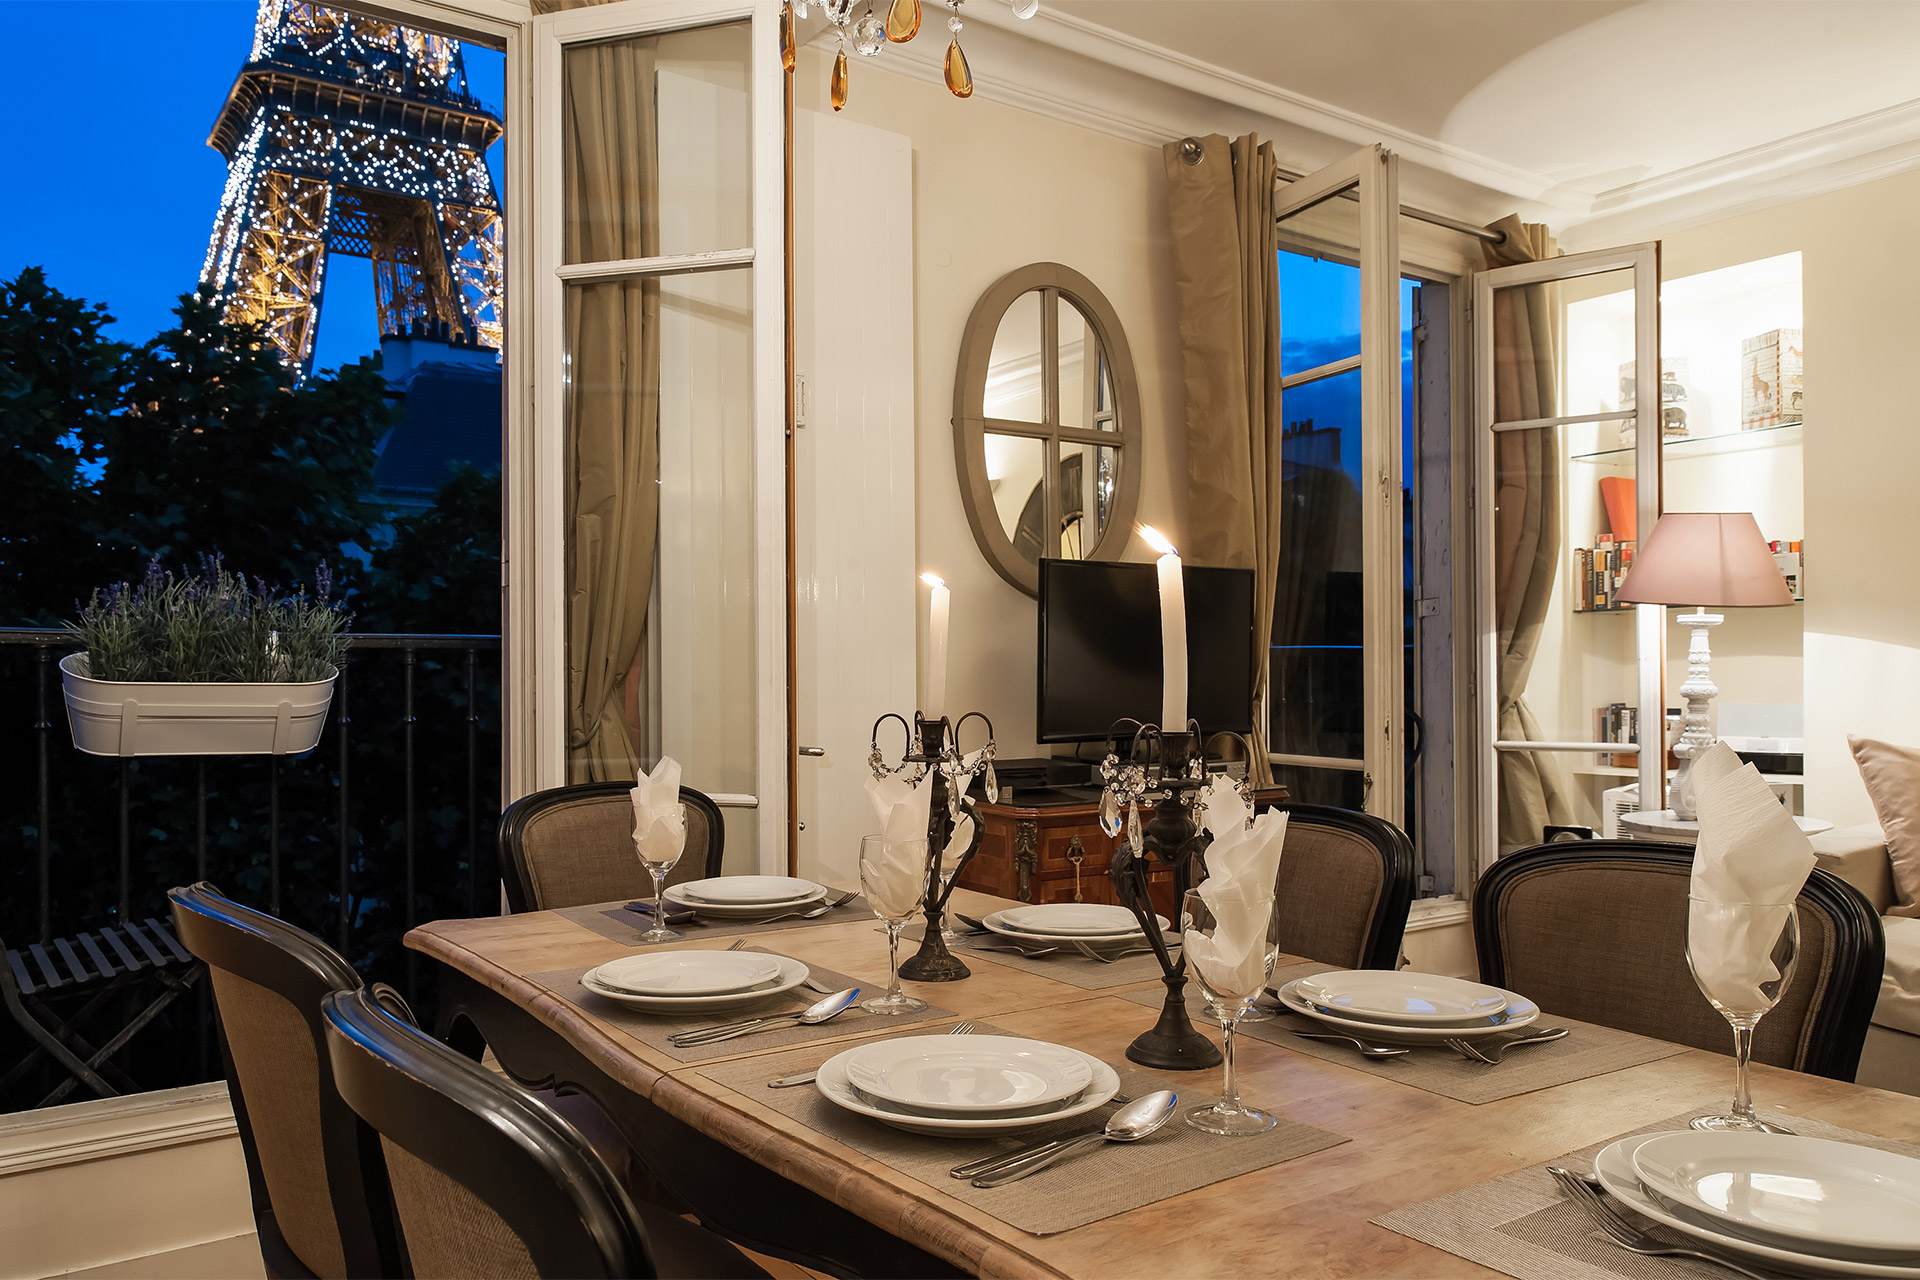 Dining table in the Bergerac vacation rental with stunning Eiffel Tower view